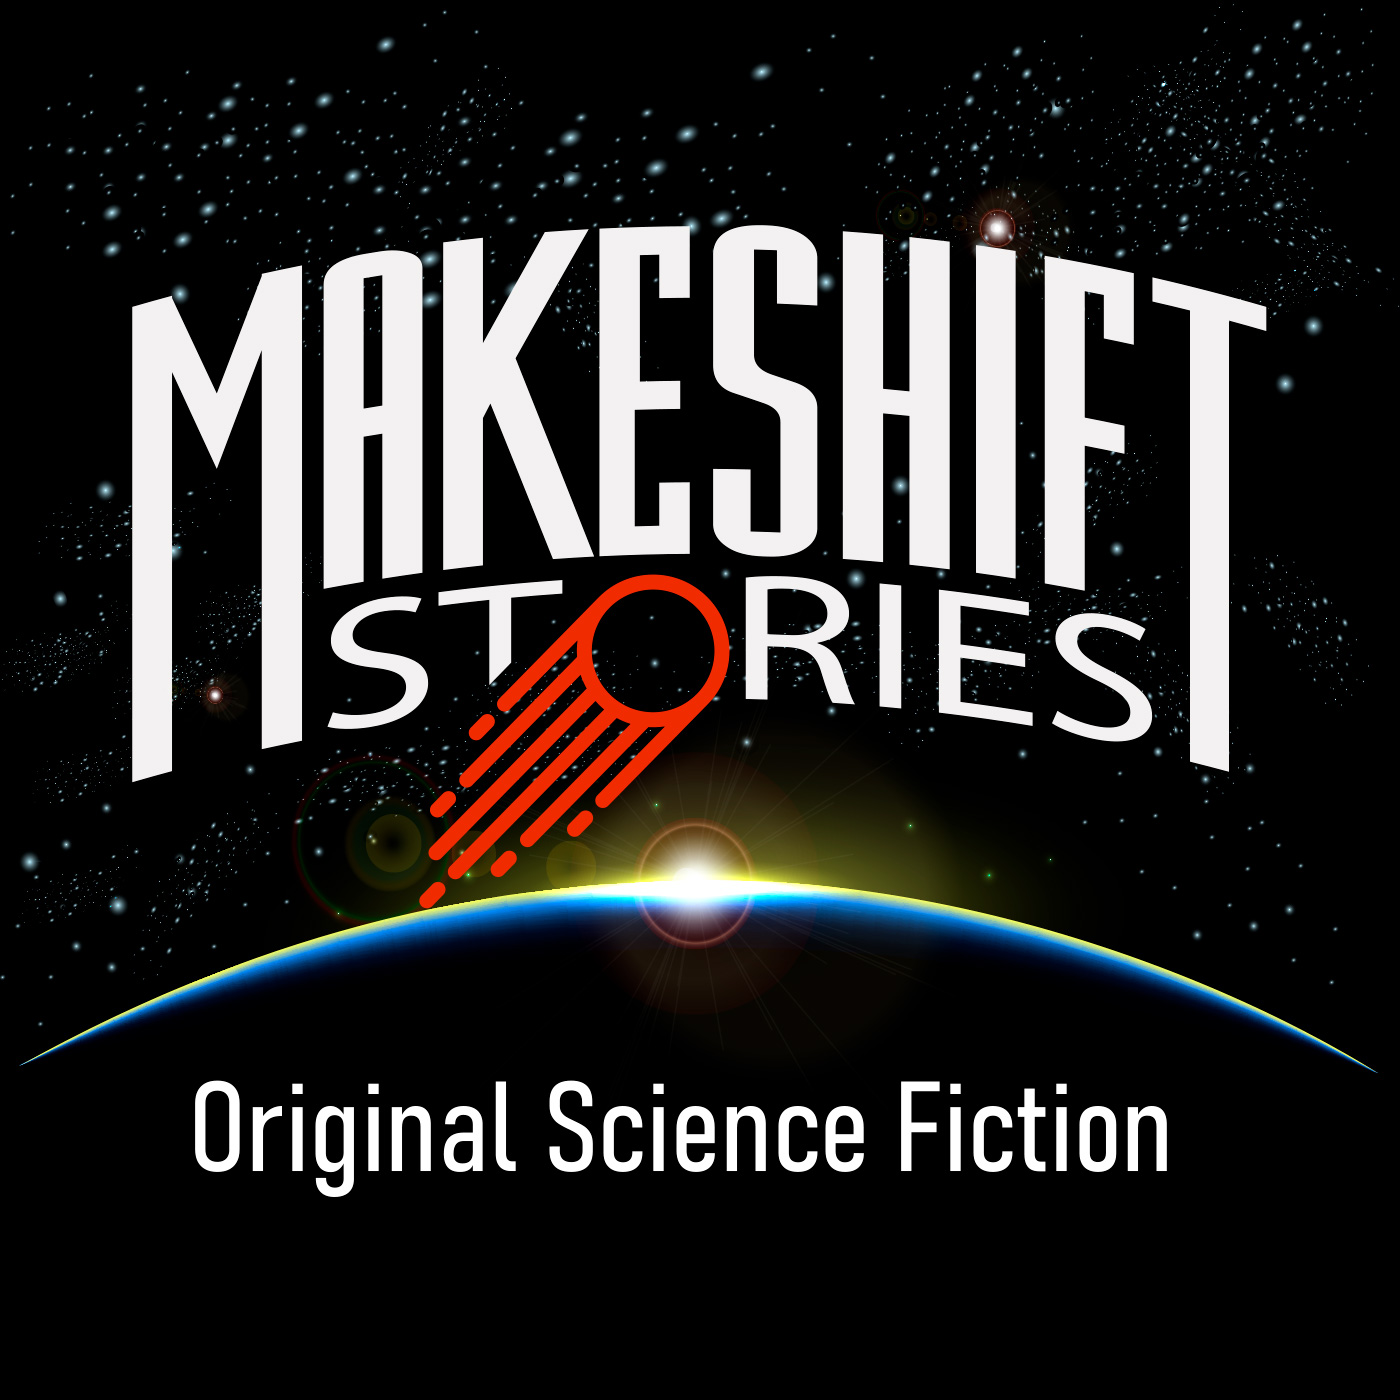 Original Science Fiction - Makeshift Stories